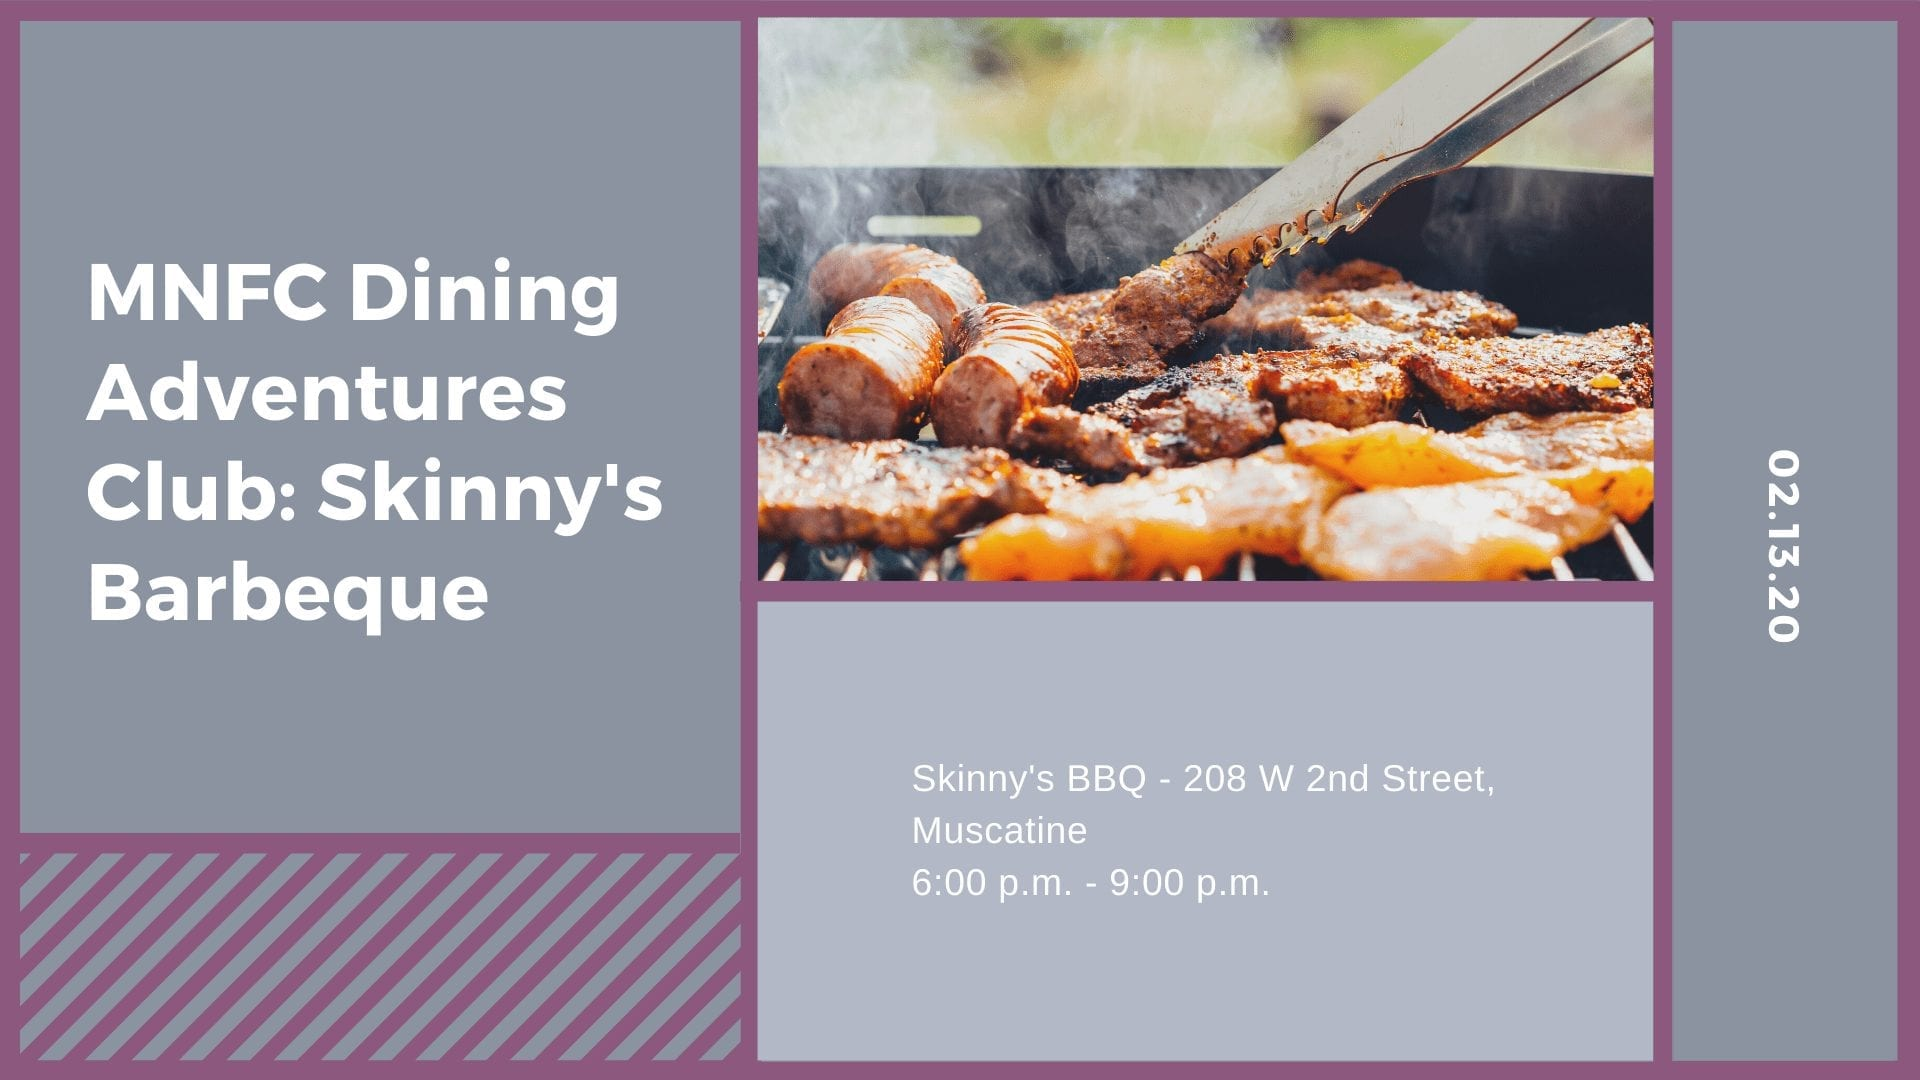 MNFC Dining Adventures Club: Skinny's Barbeque